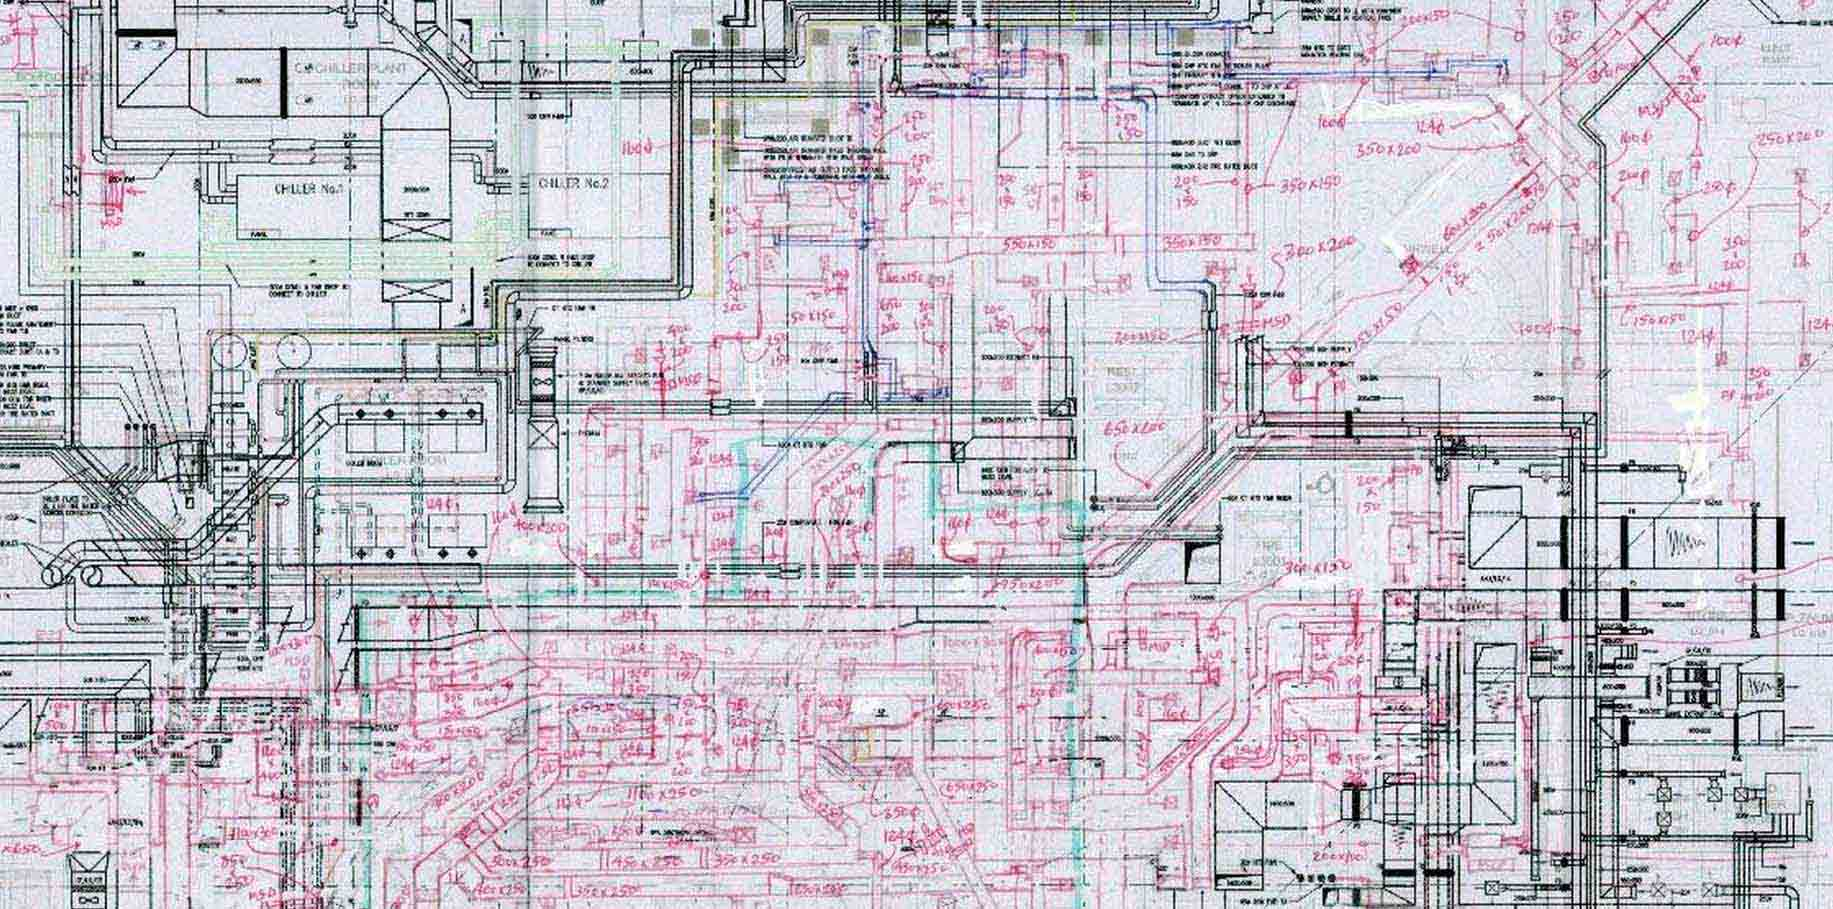 Cad Drafting From Mark Ups Autocad Services Revit Modelling Hvac Drawing The Up